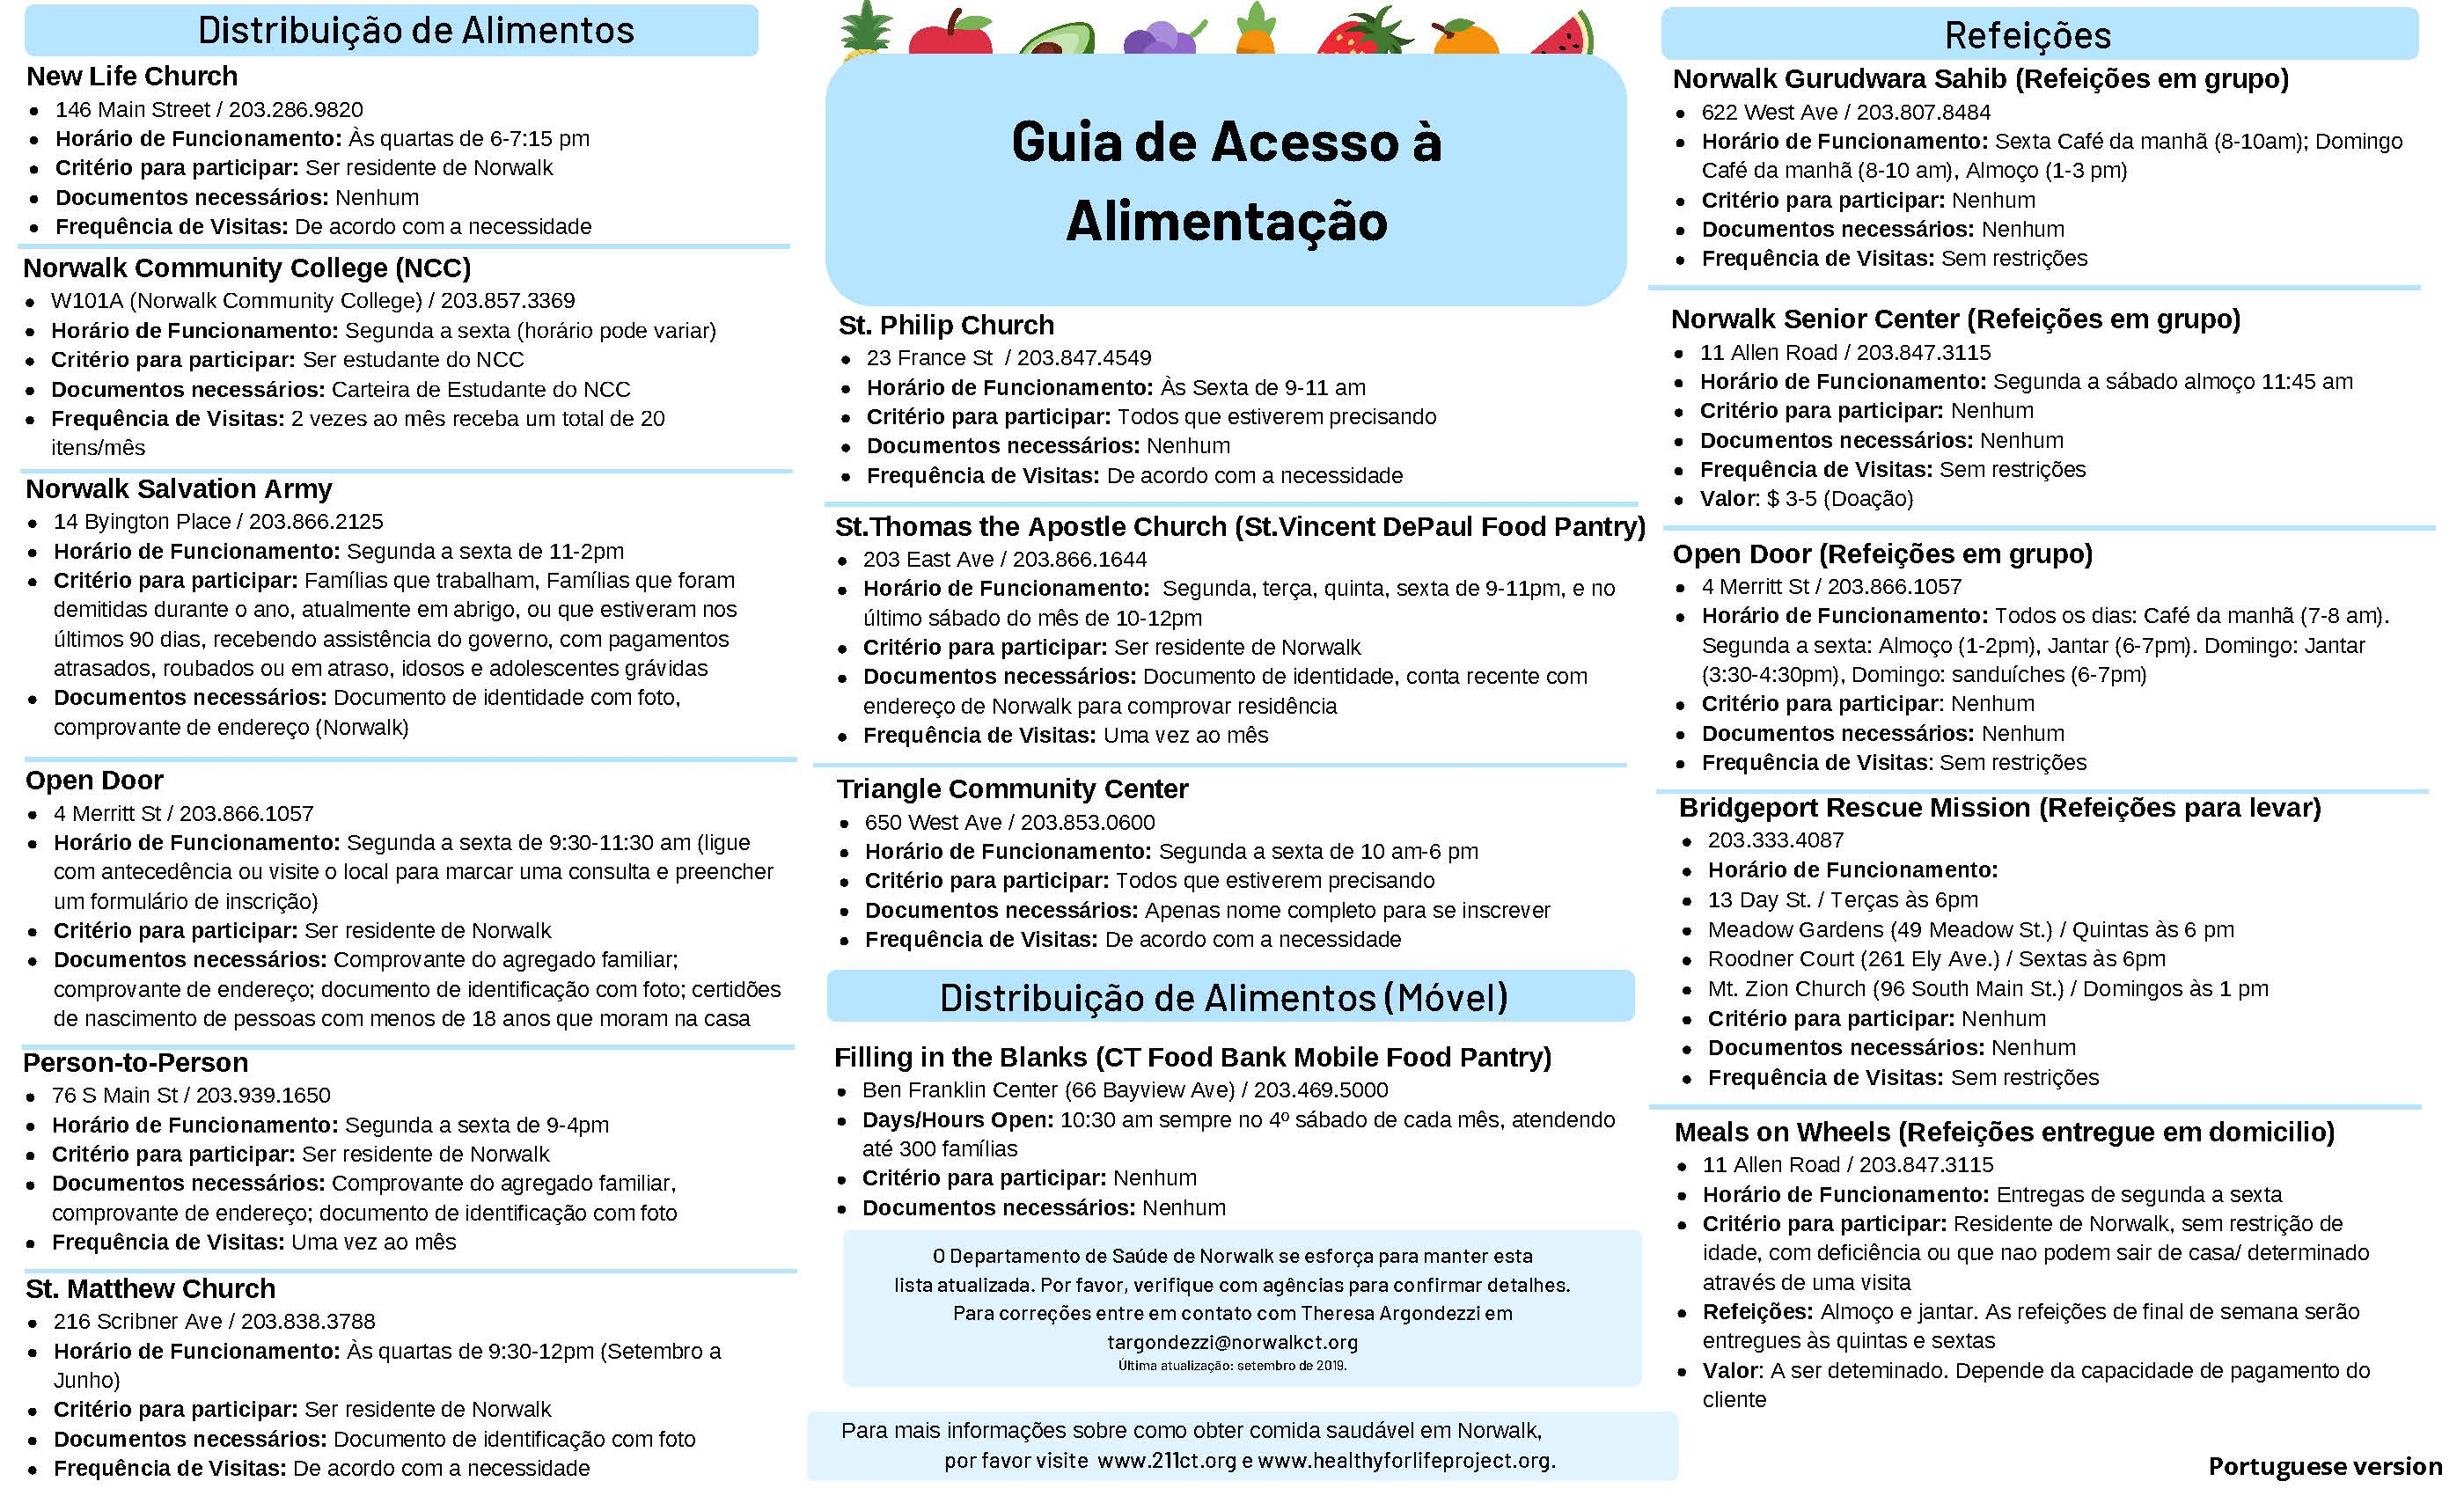 A Guide to Accessing Food in Norwalk  (Portuguese)